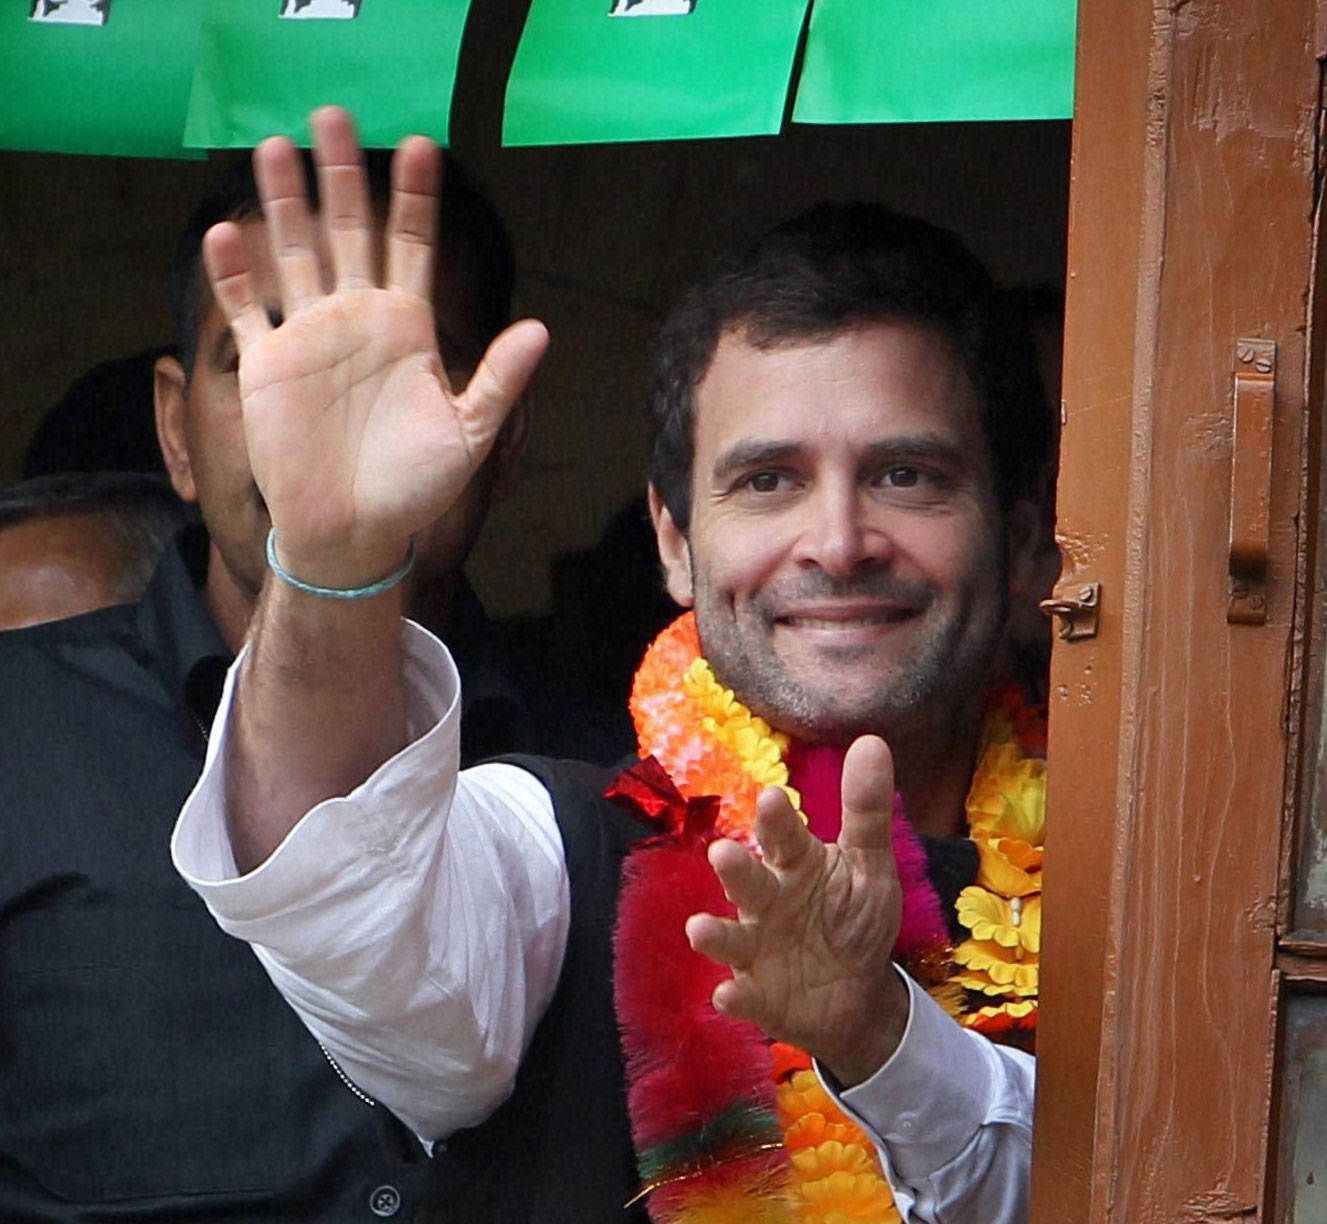 Will be happy to see Rahul as PM, says Manmohan Singh